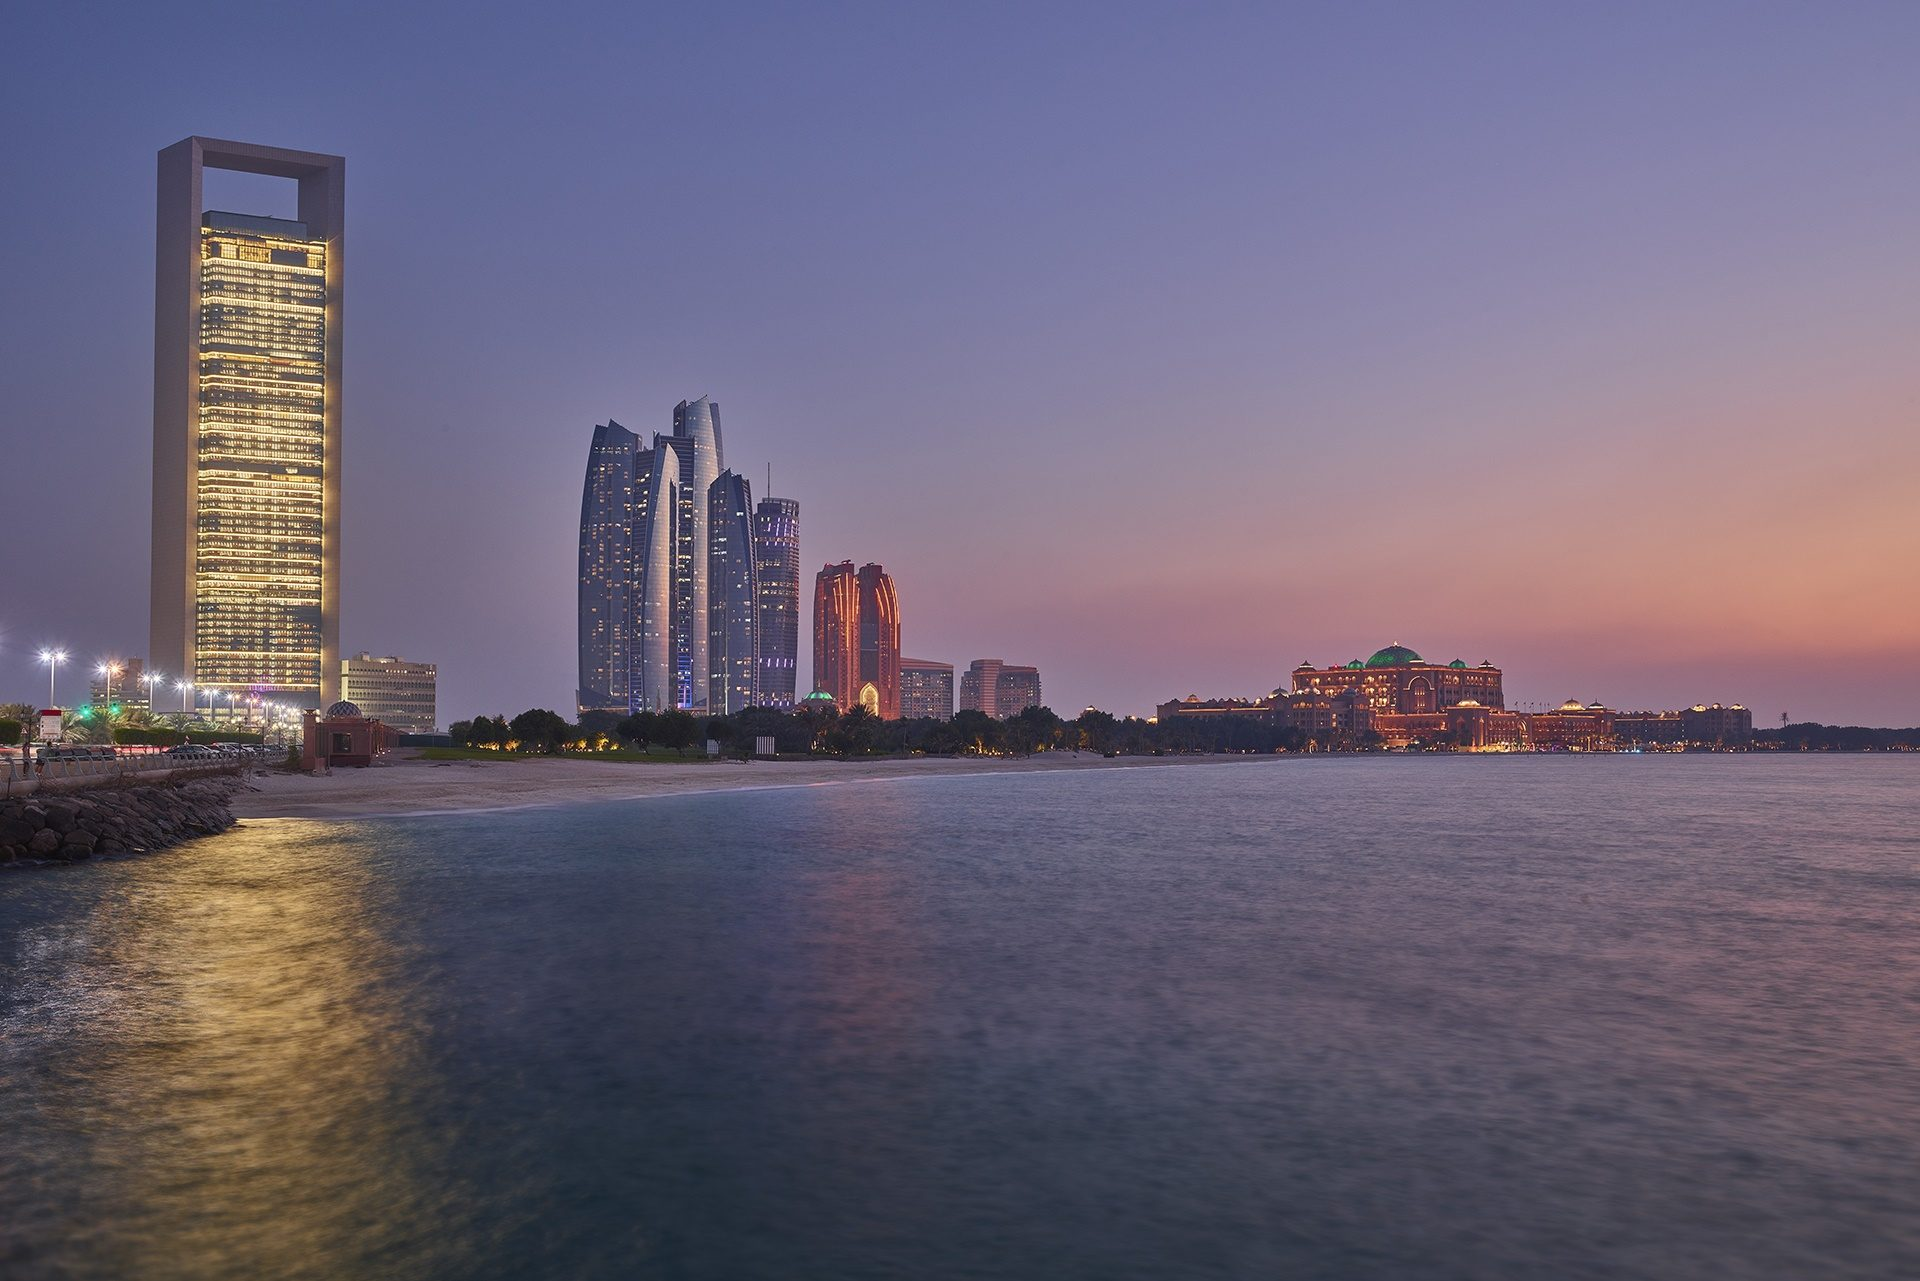 Luxushotels in Abu Dhabi